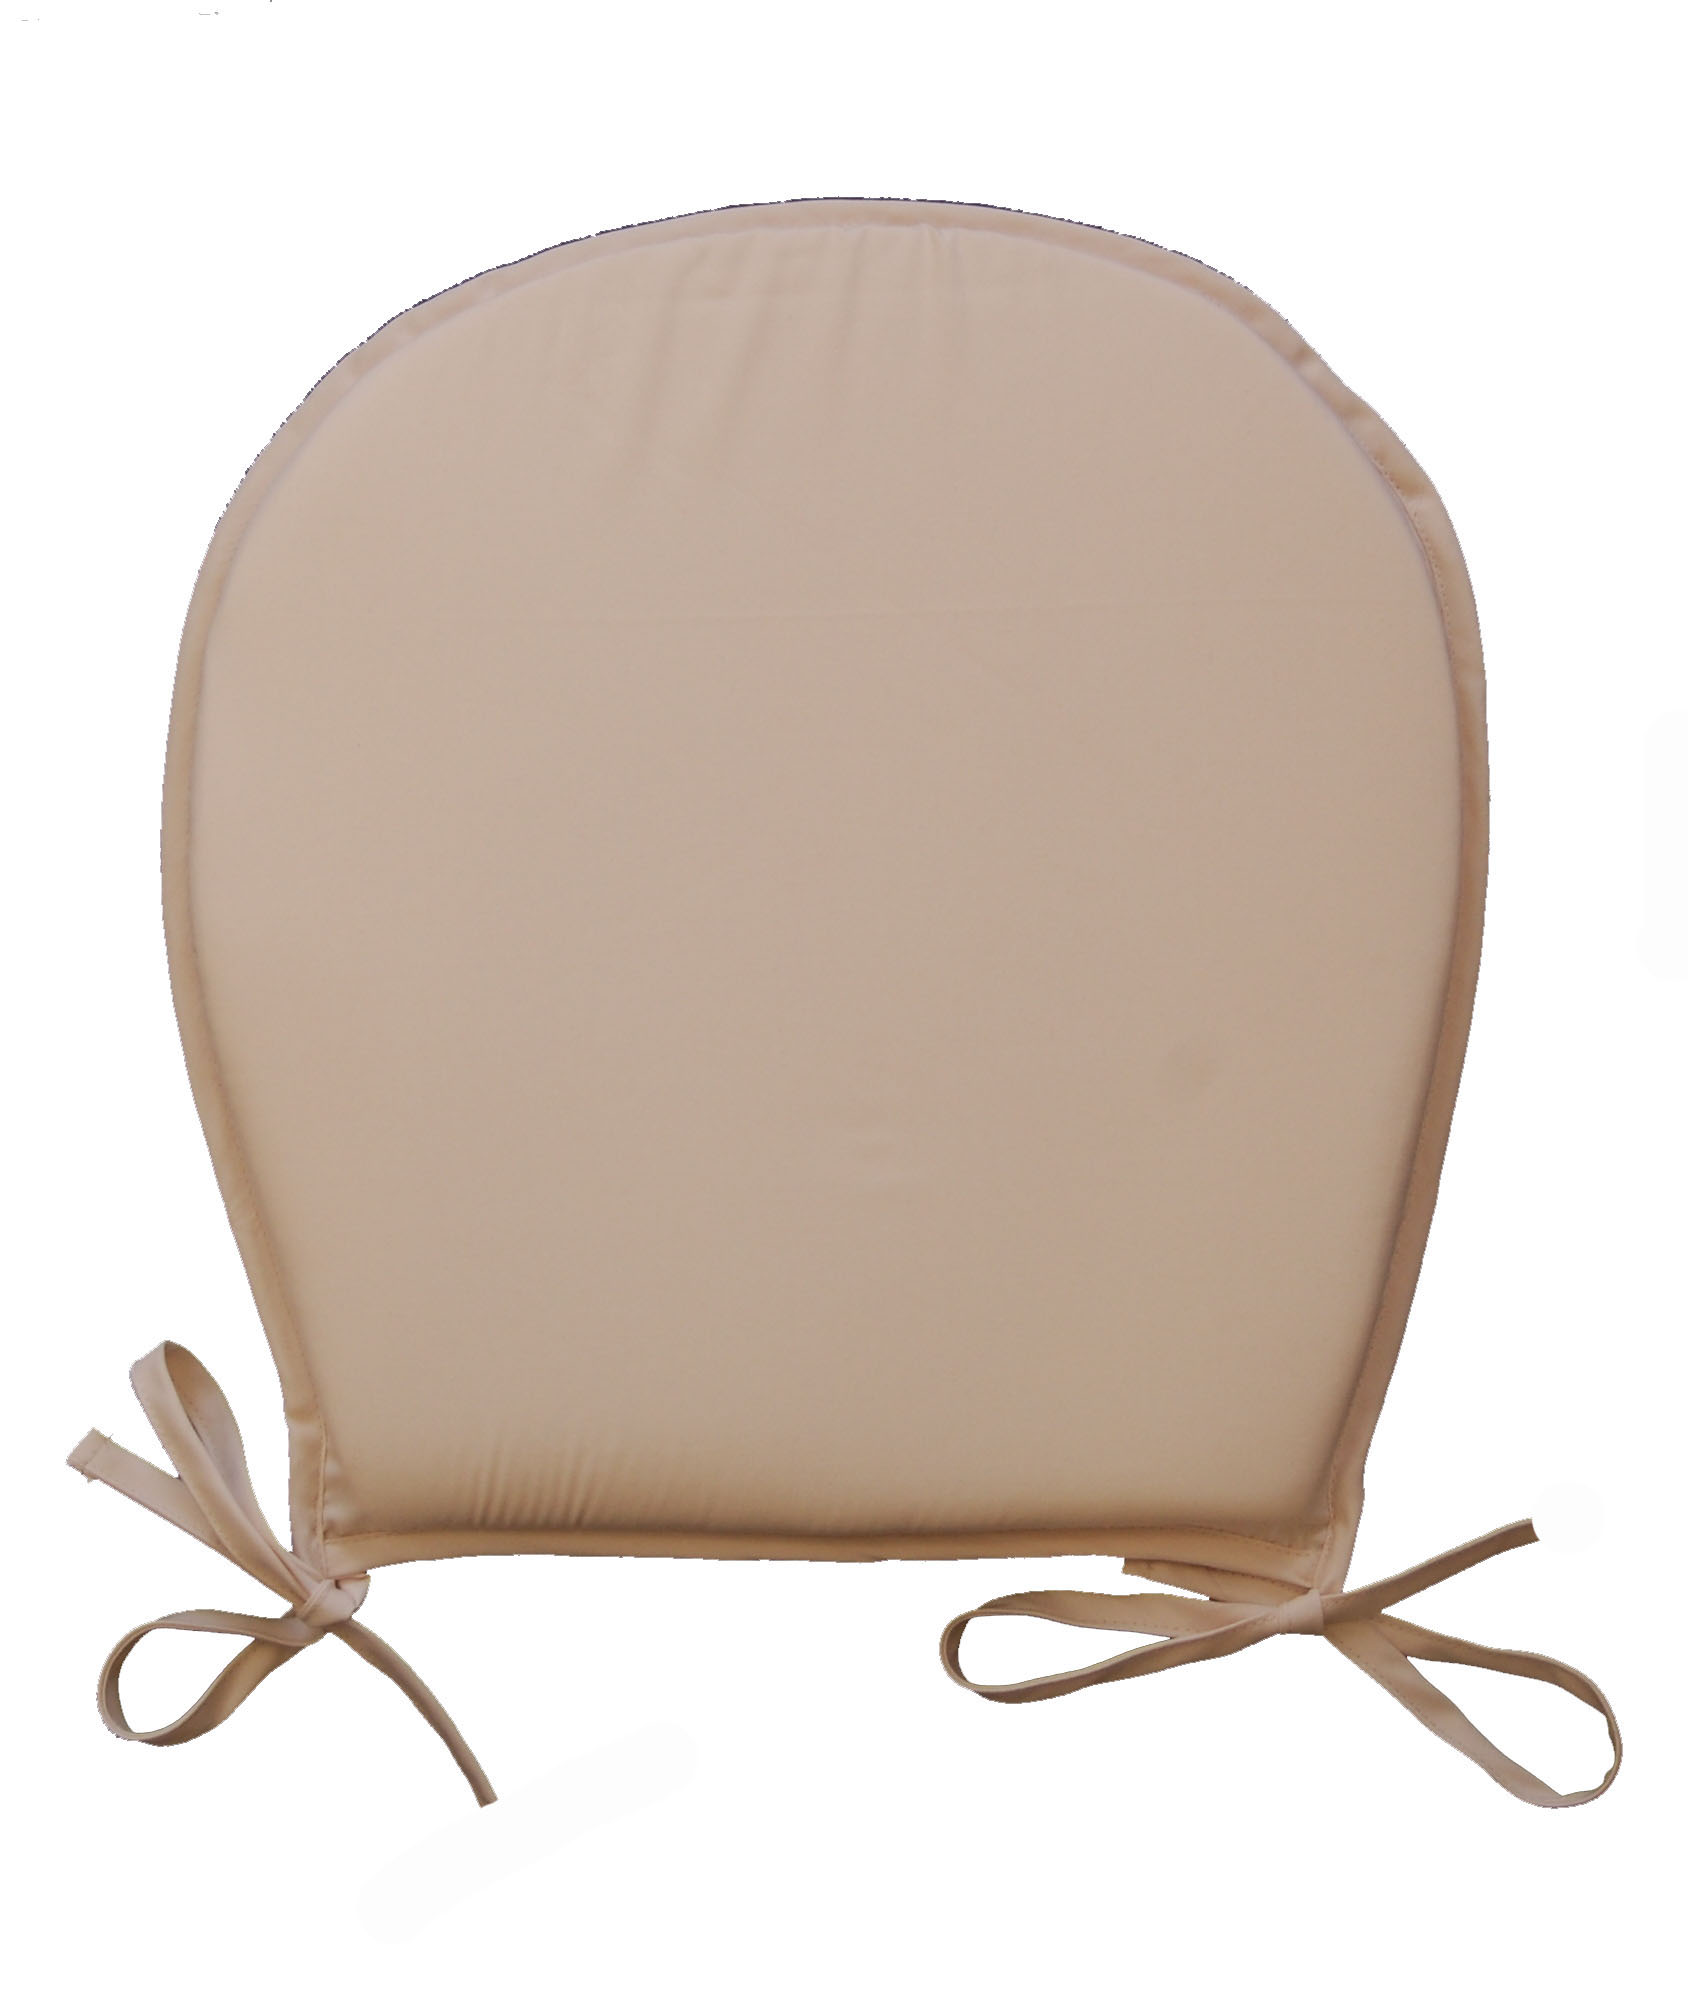 About chair seat pads plain round kitchen garden furniture cushion